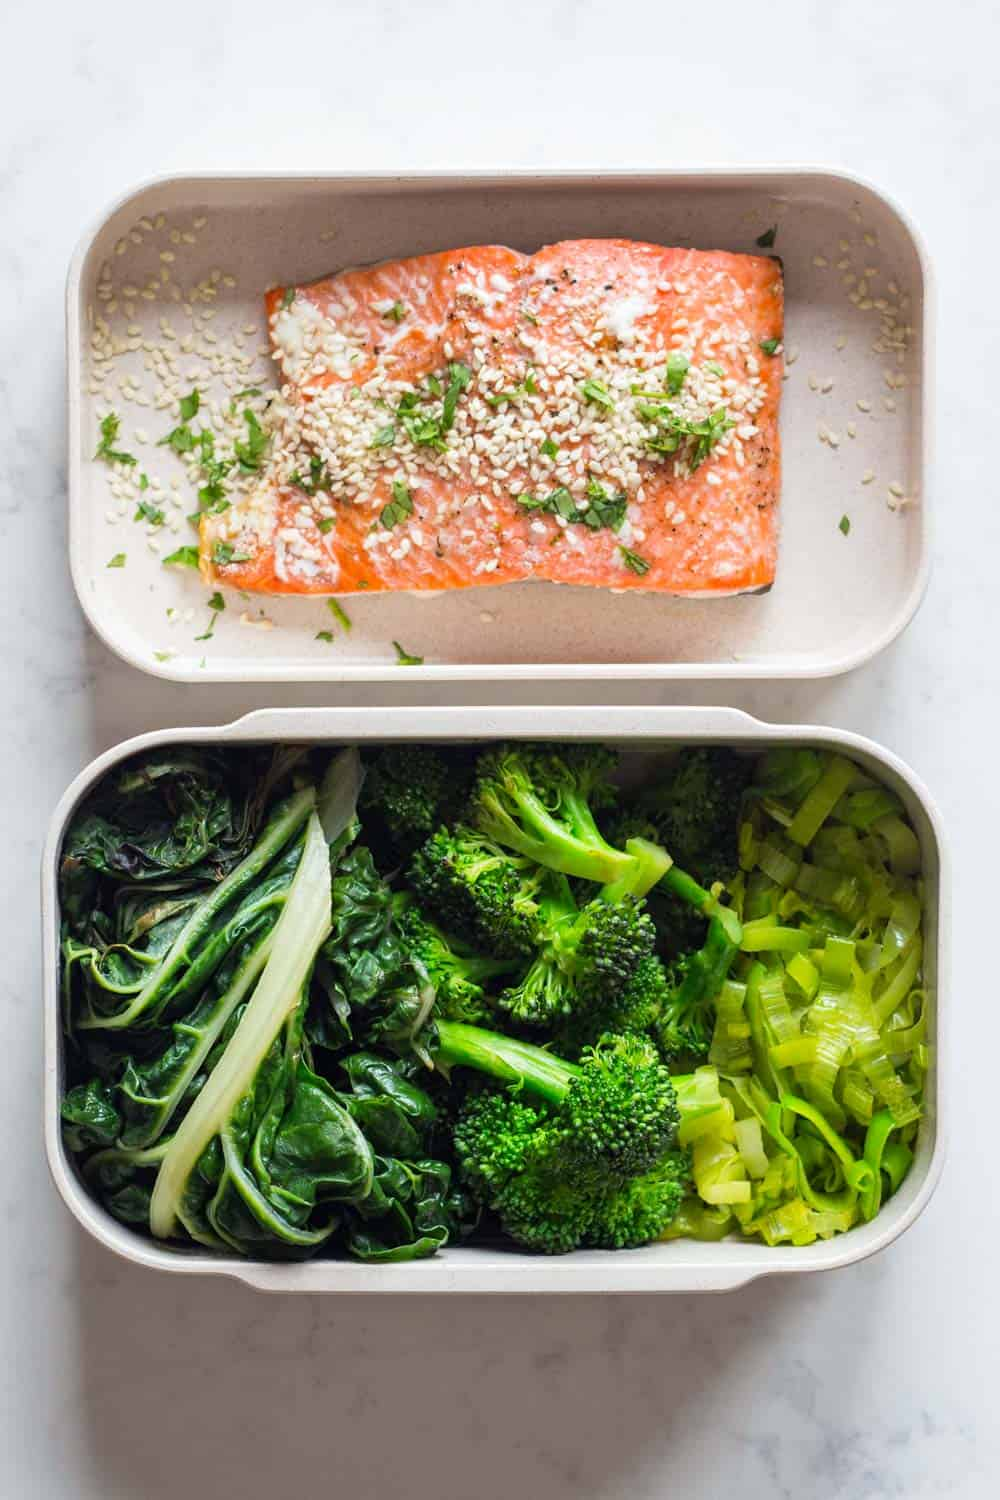 A healthy Paleo dinner for your Paleo Meal Plan - Oven-baked salmon fillet served with sautéed leek, broccoli and swiss chard.